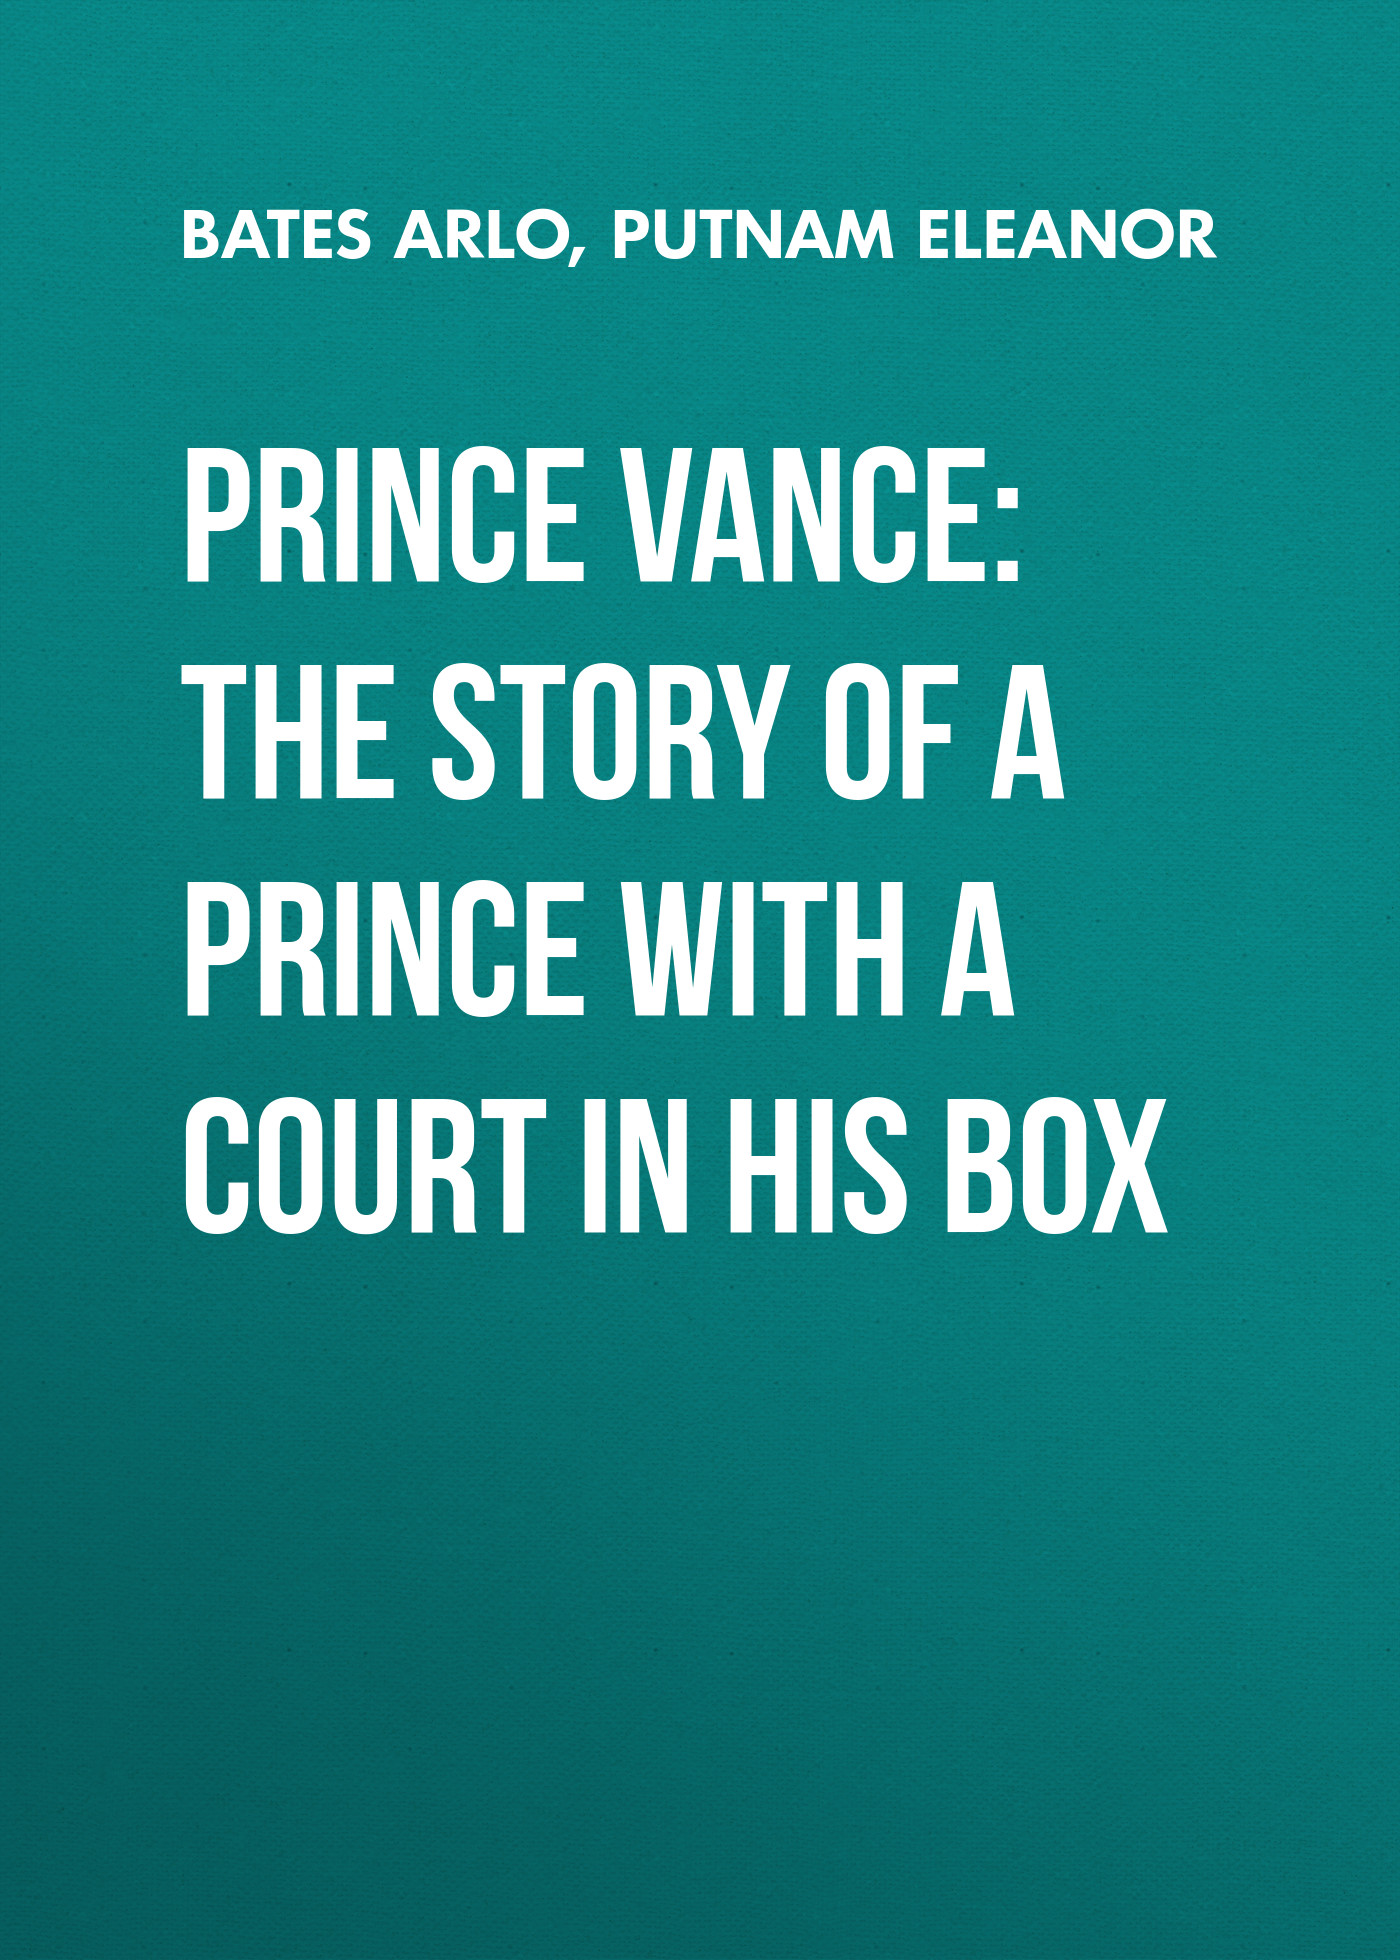 Putnam Eleanor Prince Vance: The Story of a Prince with a Court in His Box